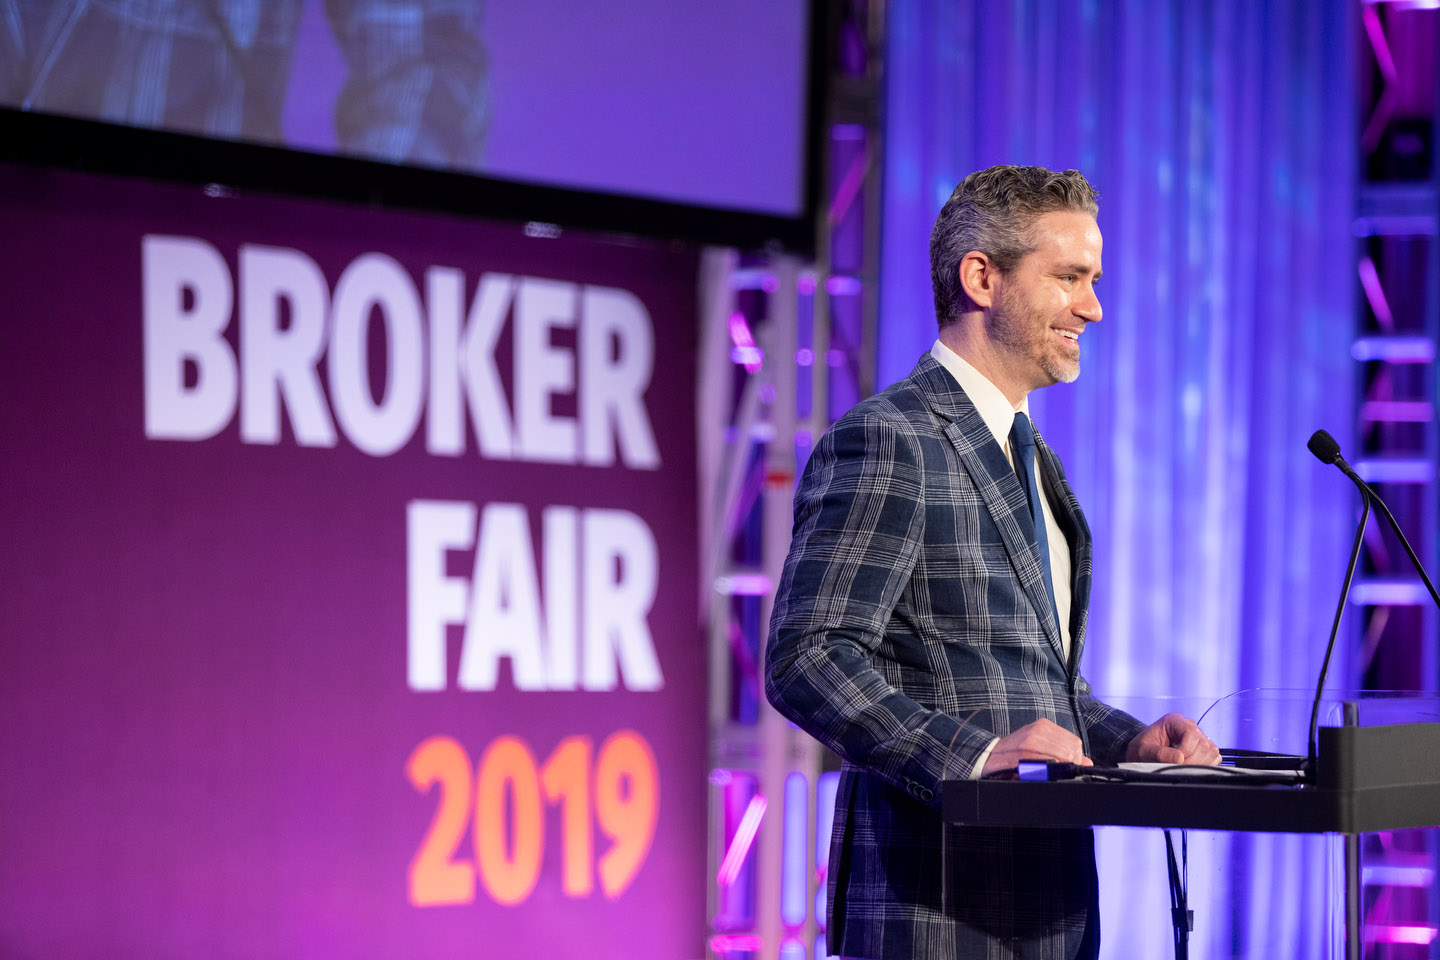 Broker Fair 2019 - Presented by deBanked - 361